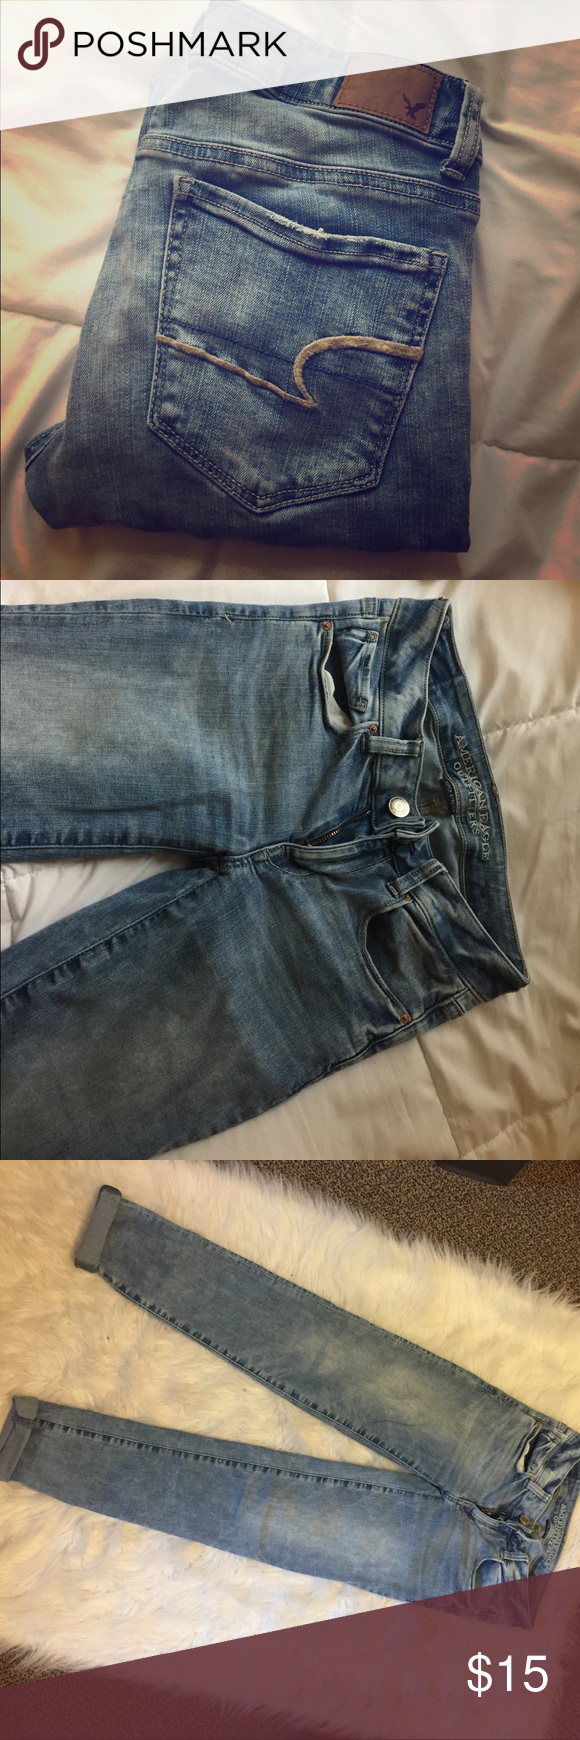 American Eagle Skinnies Cute light wash American eagle skinnies size 00 American Eagle Outfitters Jeans Skinny